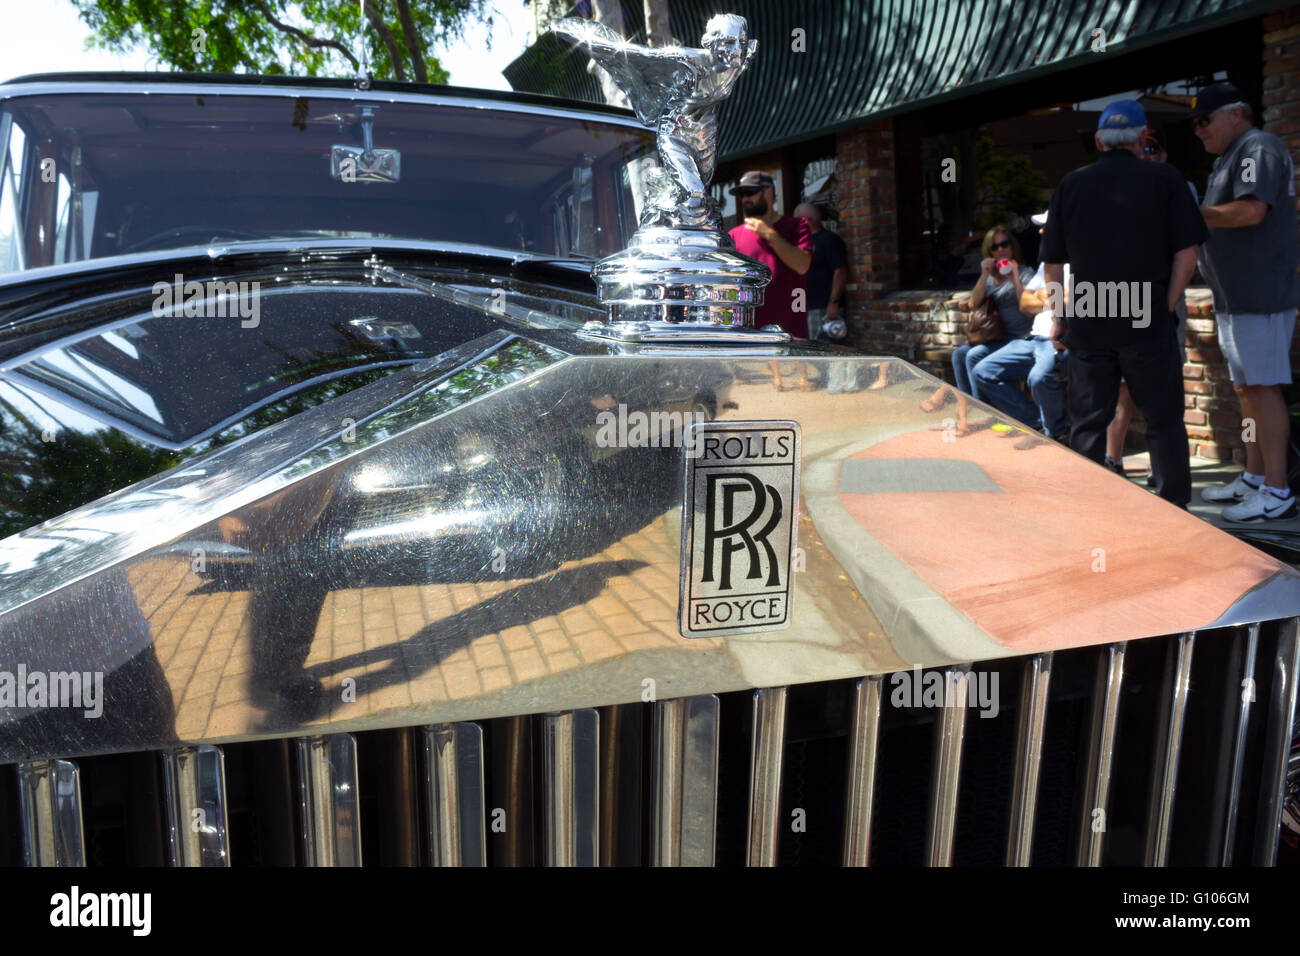 1948 classic Rolls Royce front emblem with wings statue - Stock Image